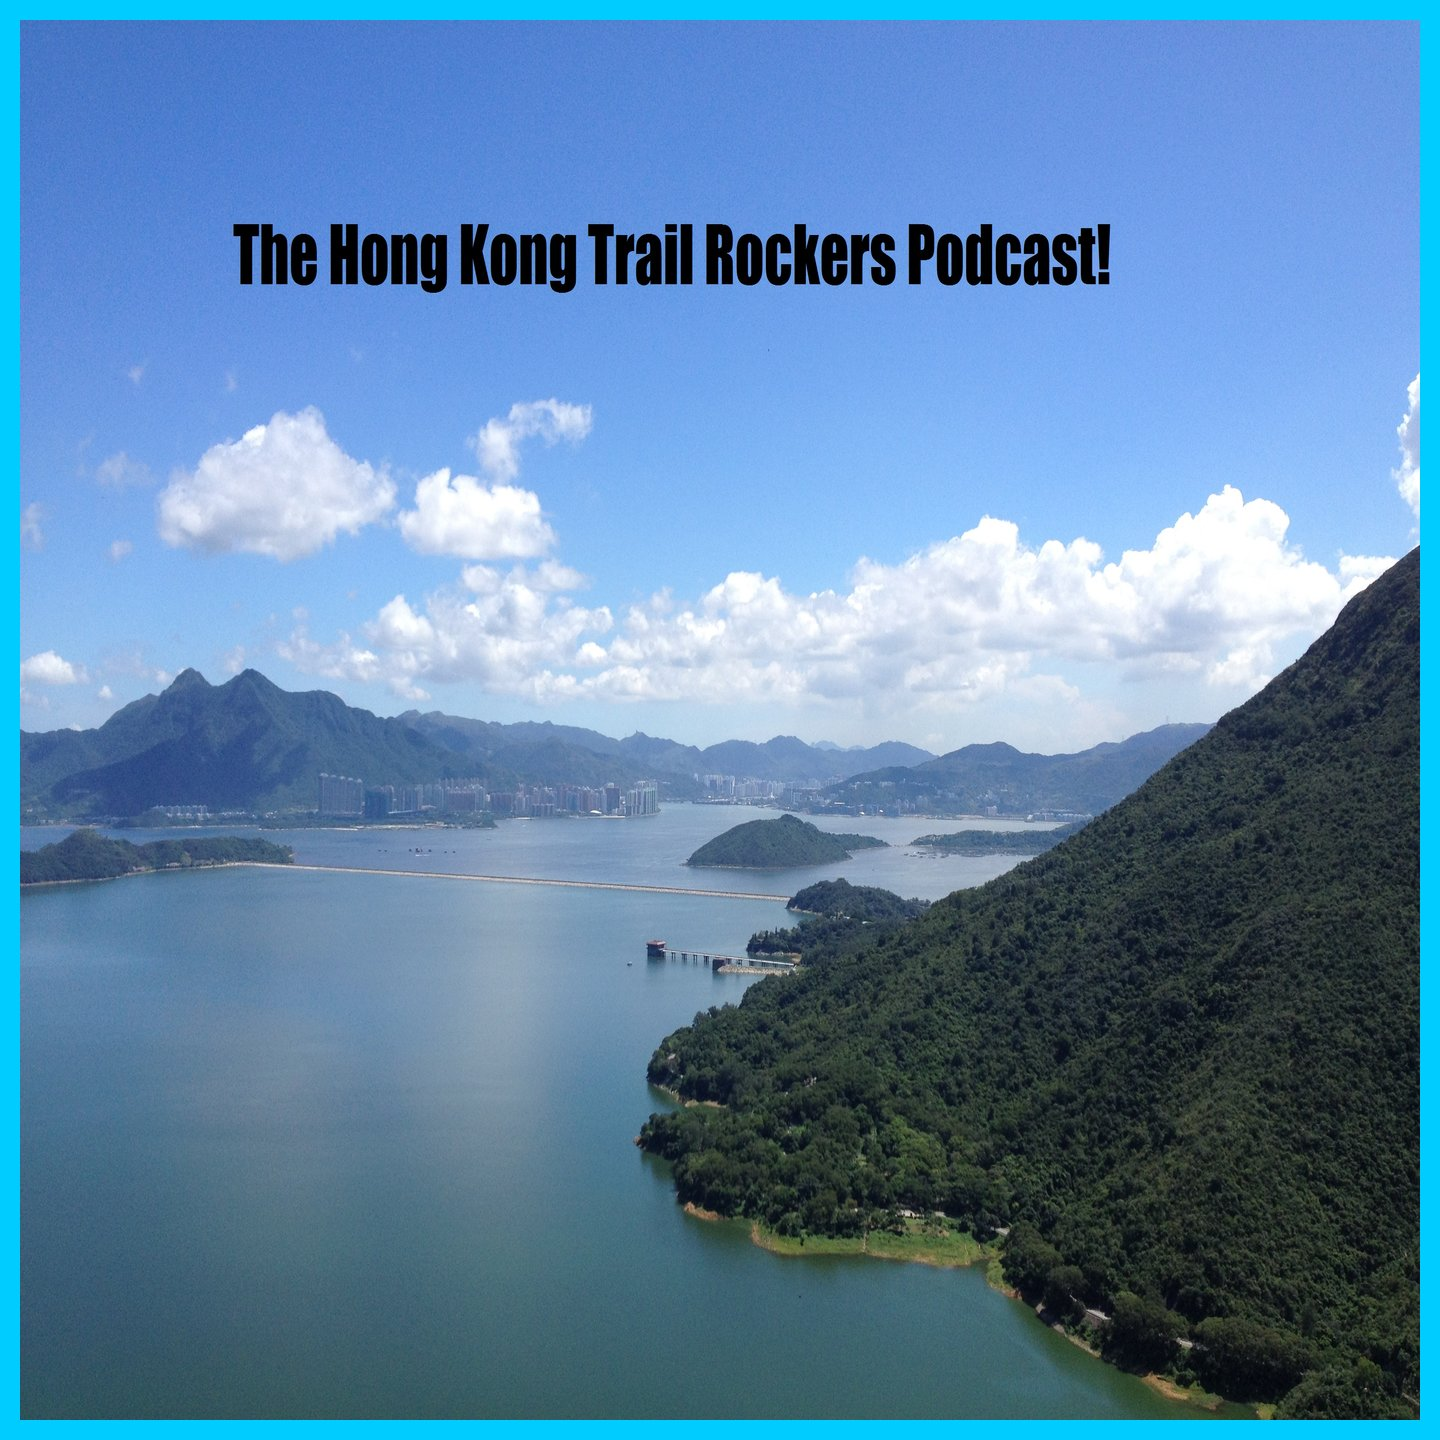 The Hong Kong Trail Rockers Podcast!